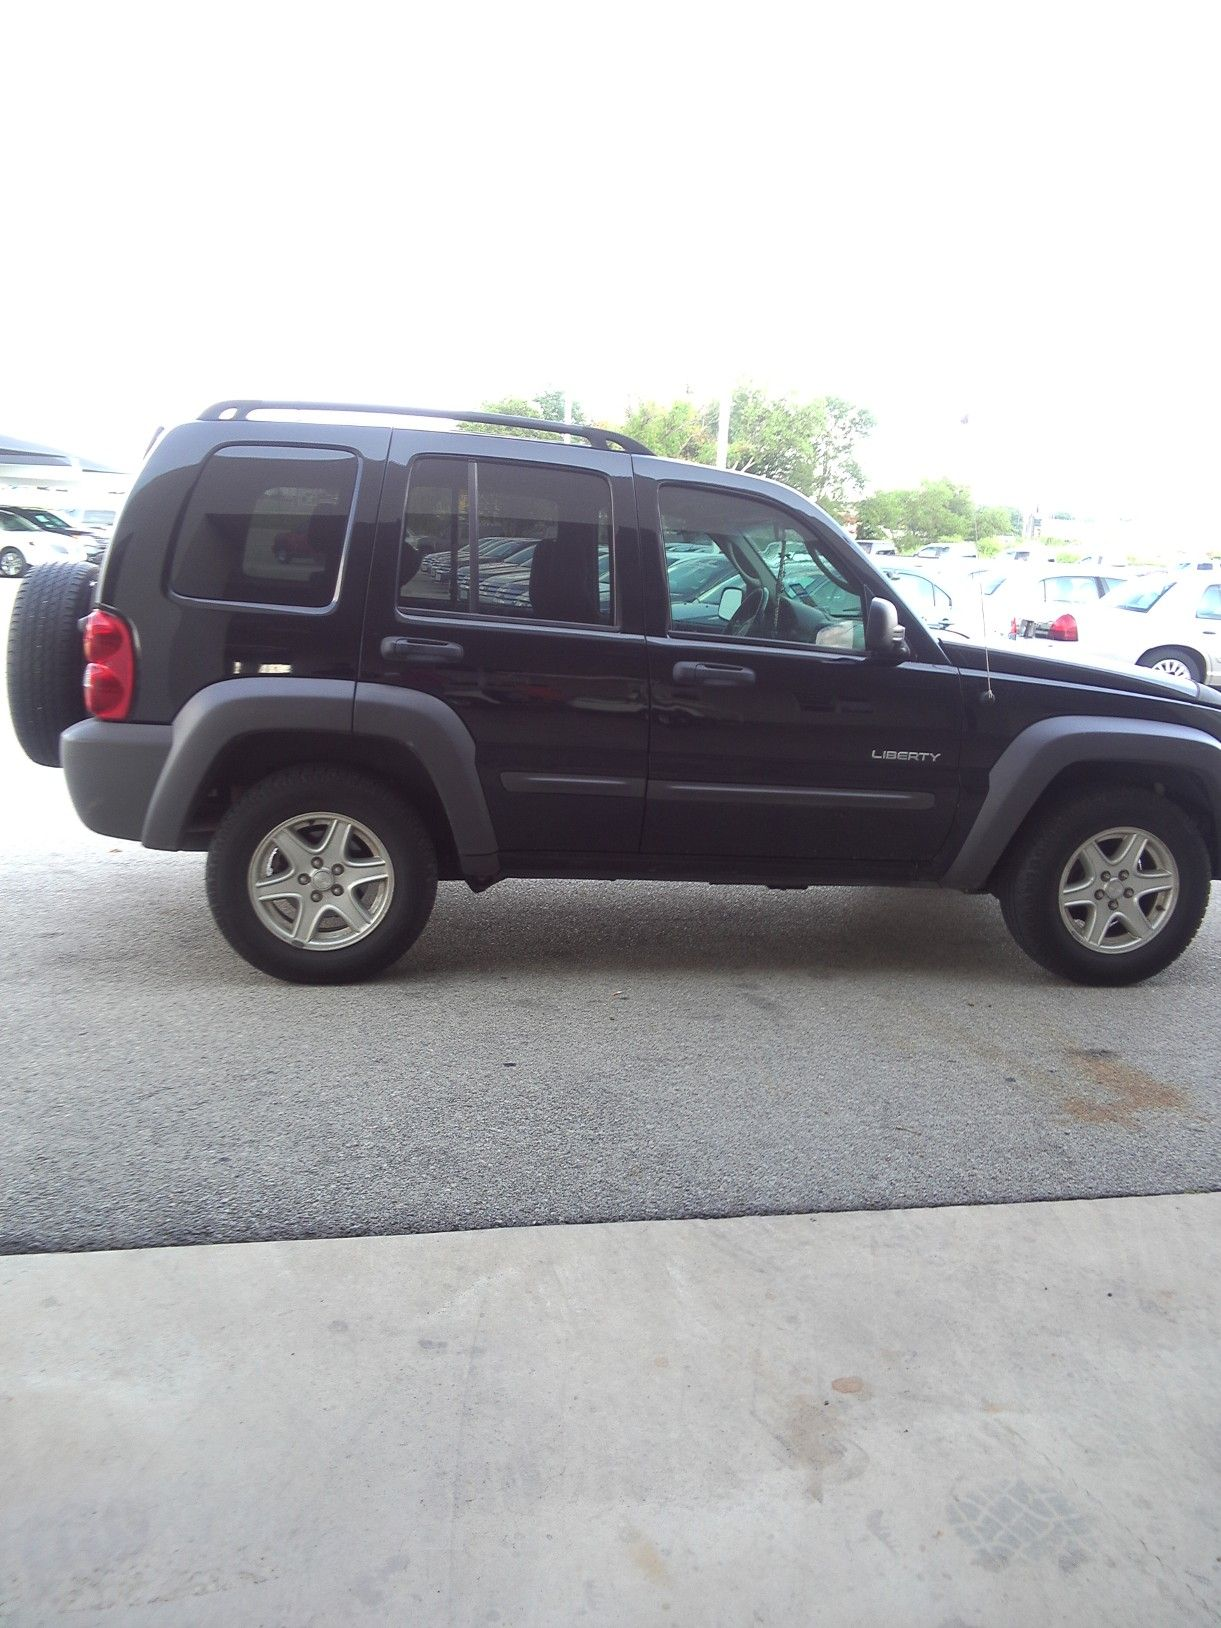 2004' Jeep Liberty in Arey's Garage Sale Brownwood, TX